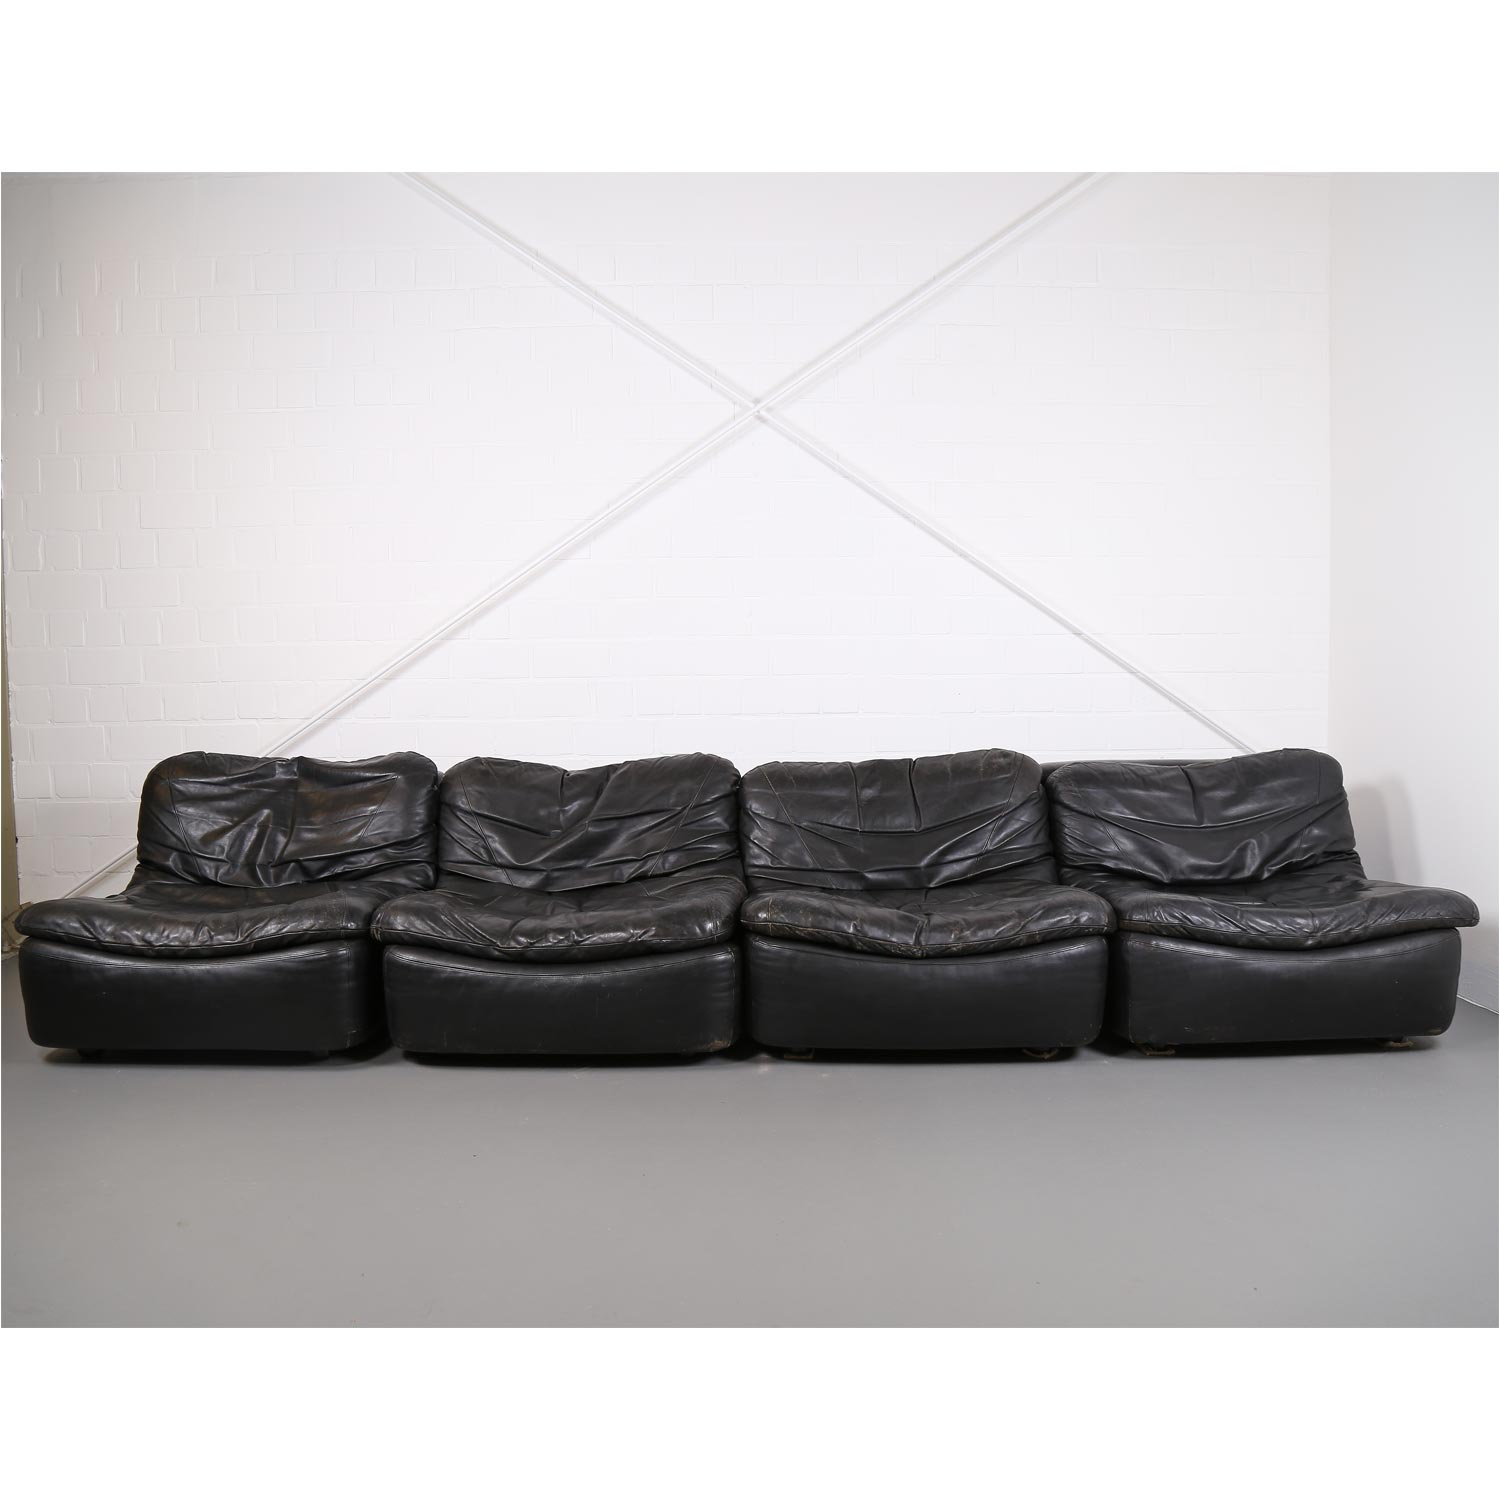 vintage modular leather sofa from dreipunkt international cor dekaden. Black Bedroom Furniture Sets. Home Design Ideas